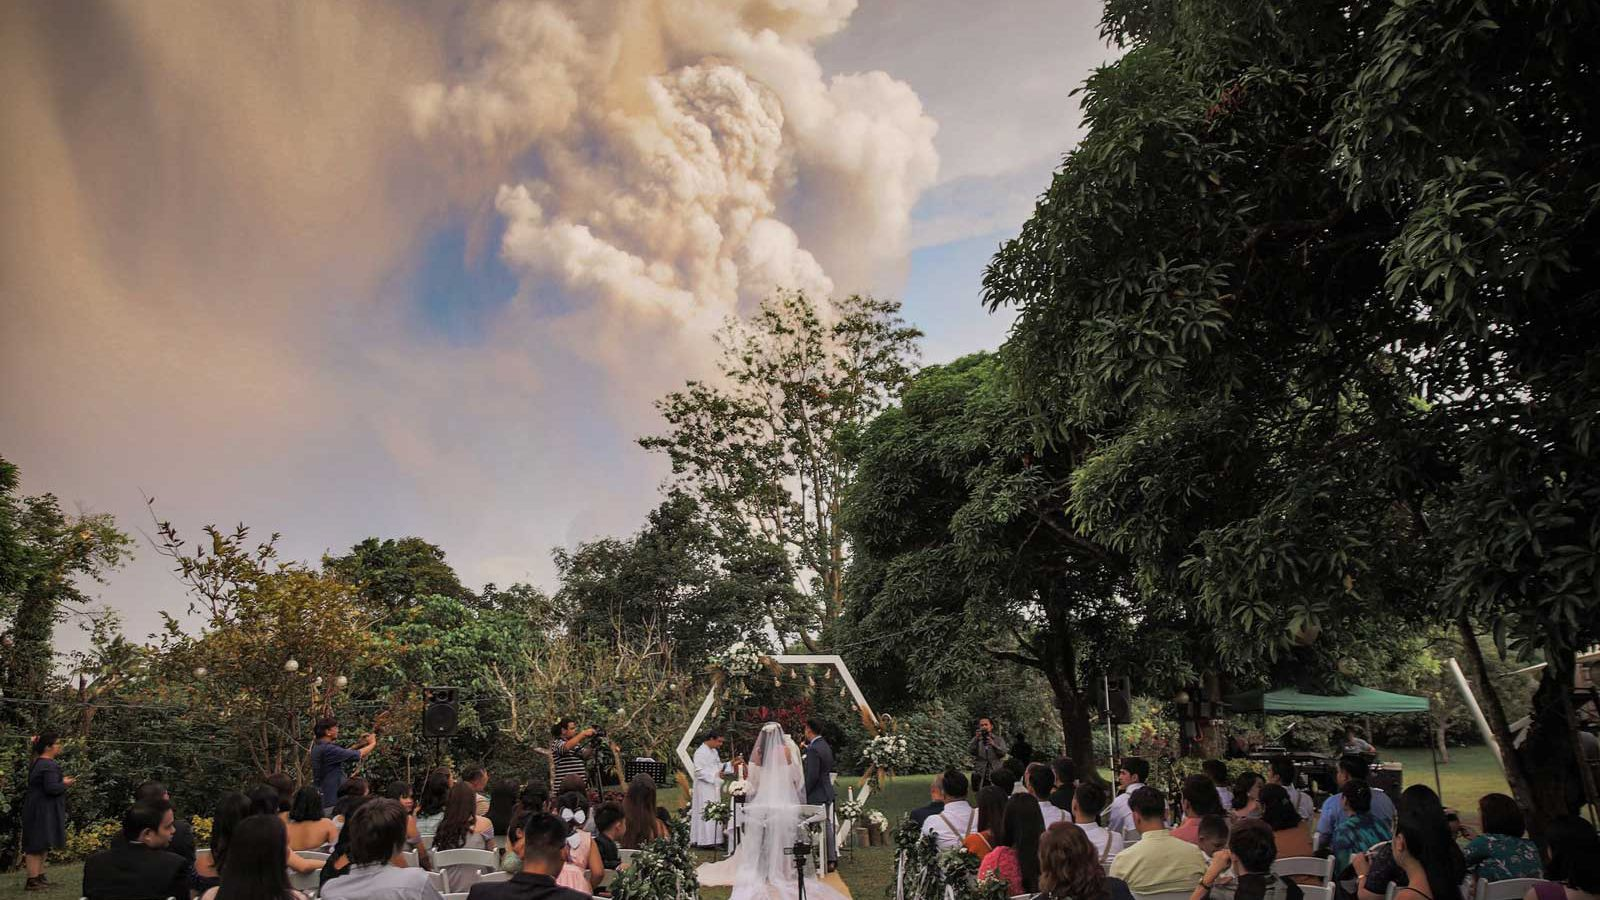 Wedding outside during Taal Volcano eruption in Philippines.